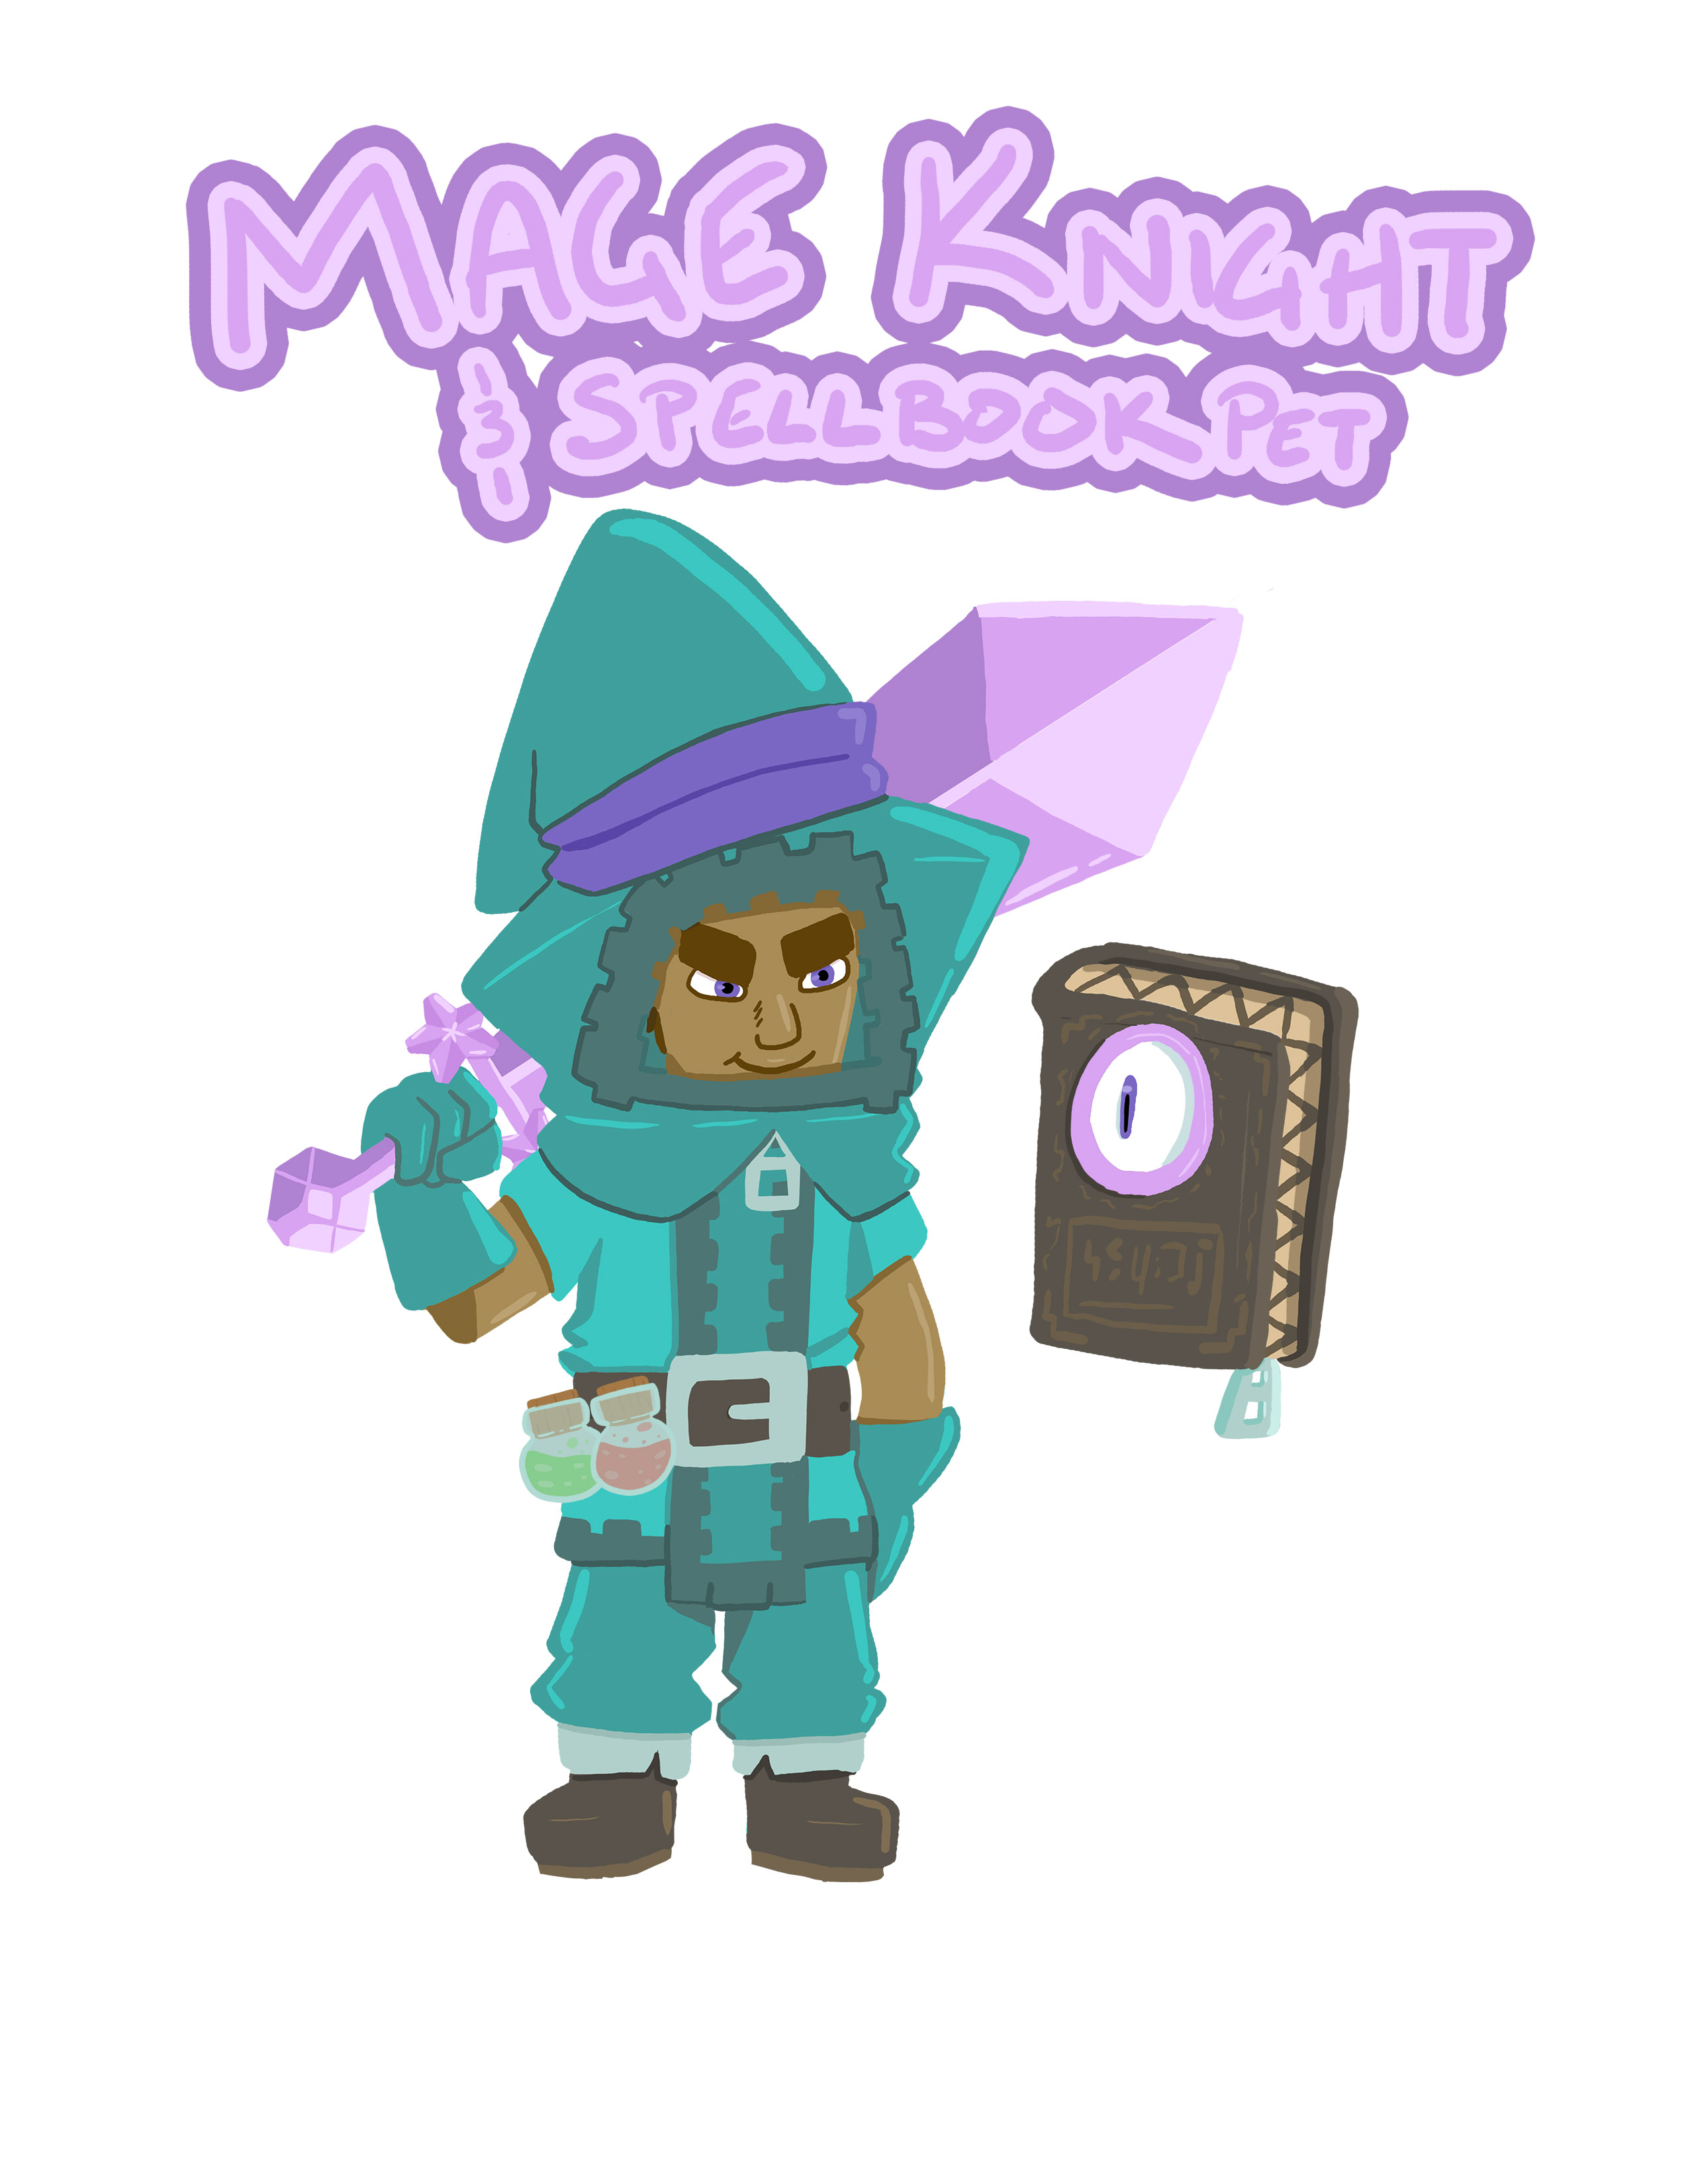 Nonstop Knight/COTM Submission: Mage Knight and Spellbook Pet